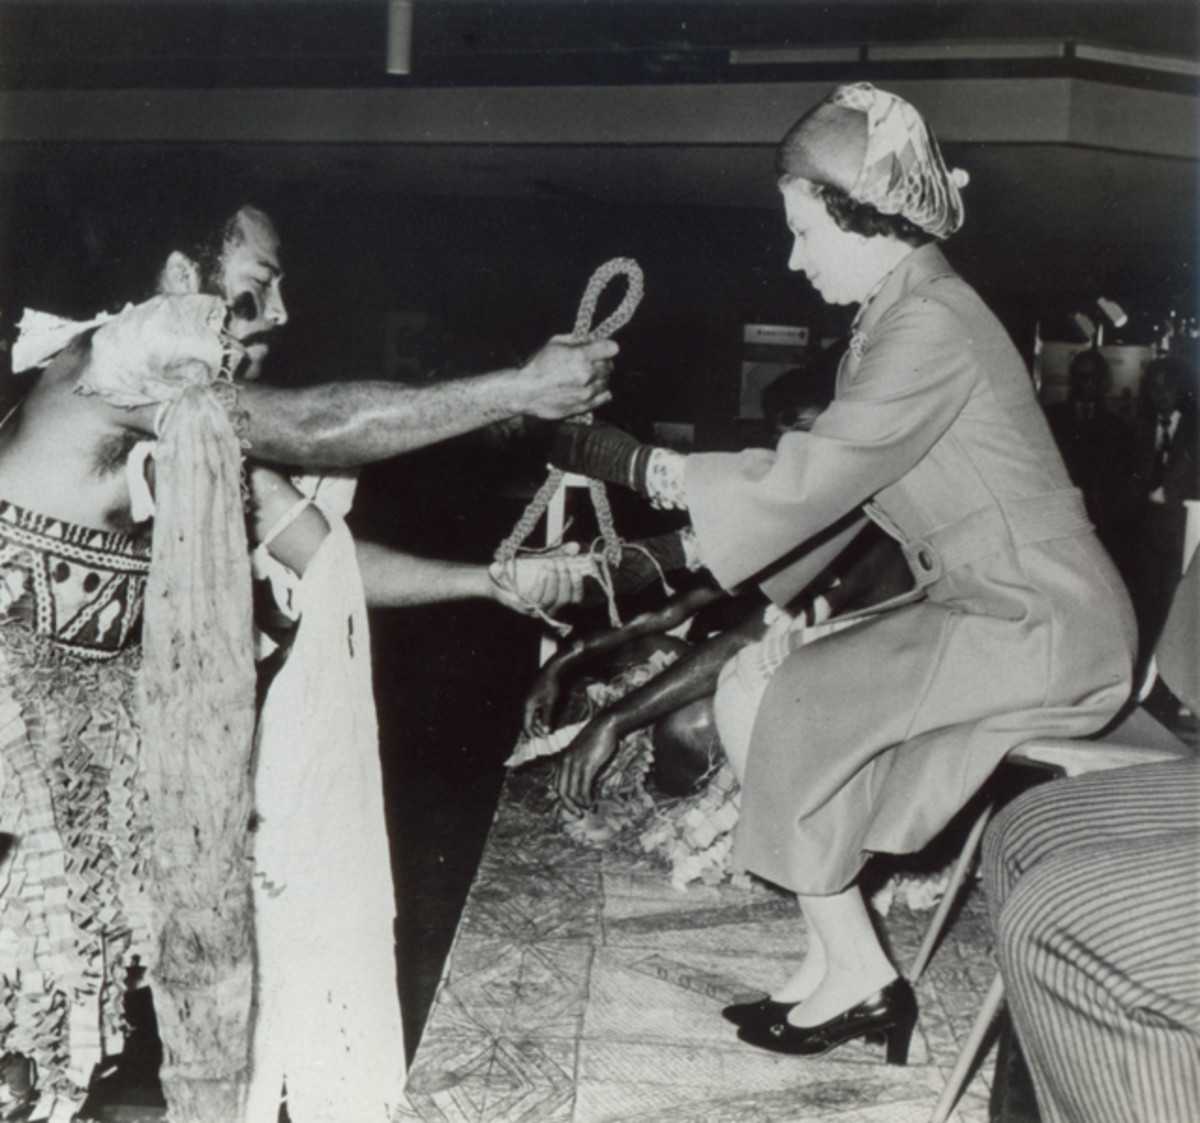 Queen Elizabeth II is presented with and accepts a tabua during a ceremonial presentation at the Commonwealth Institute in Kensington in 1974, thus binding her and the Fijian people together. Image courtesy Omega Collection.